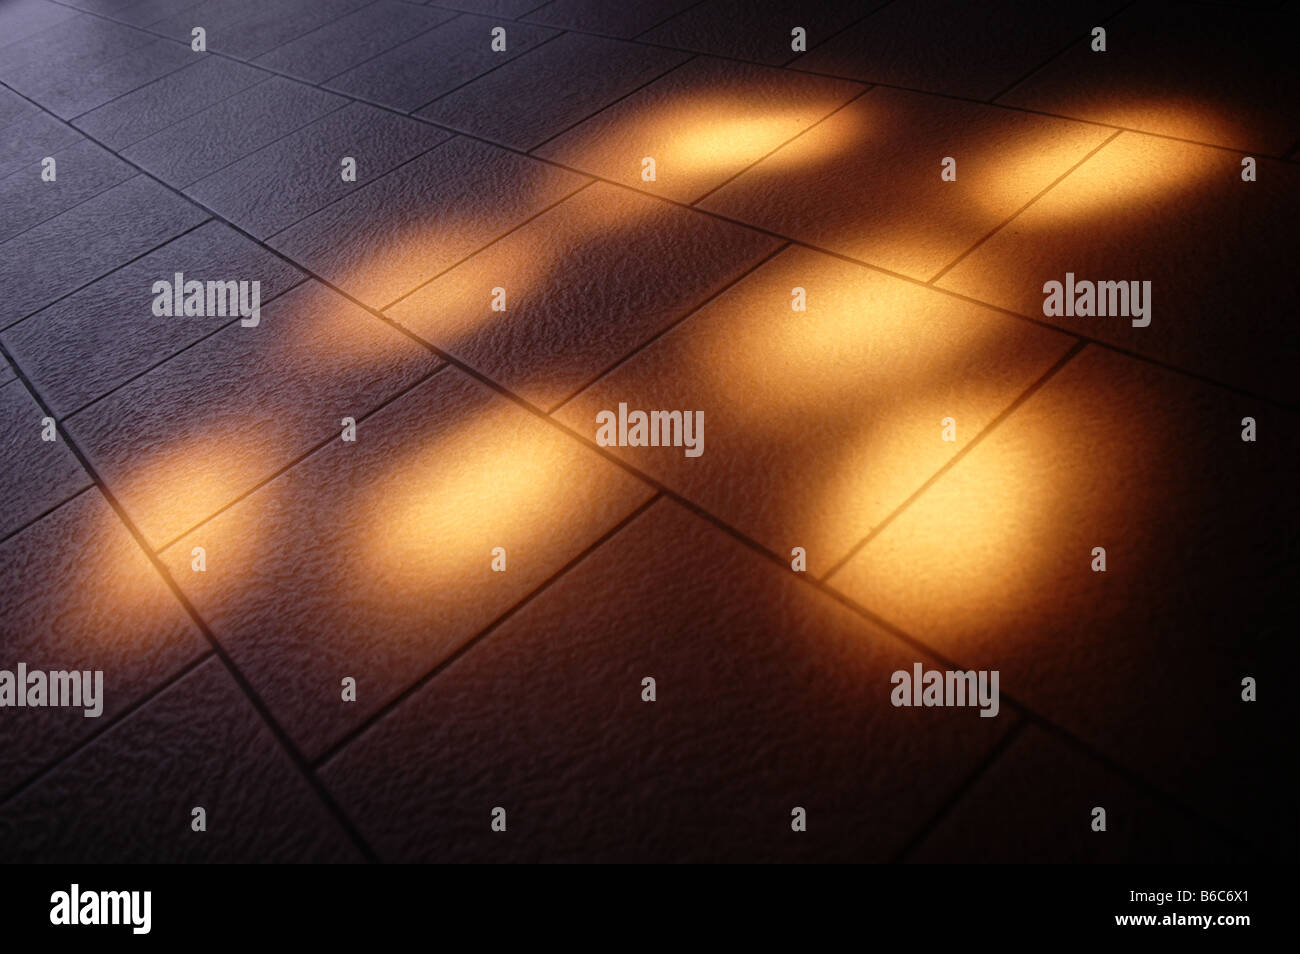 Small Floor Spotlights Grouping Of Small Yellow Spotlights On A Tiled Floor Stock Photo